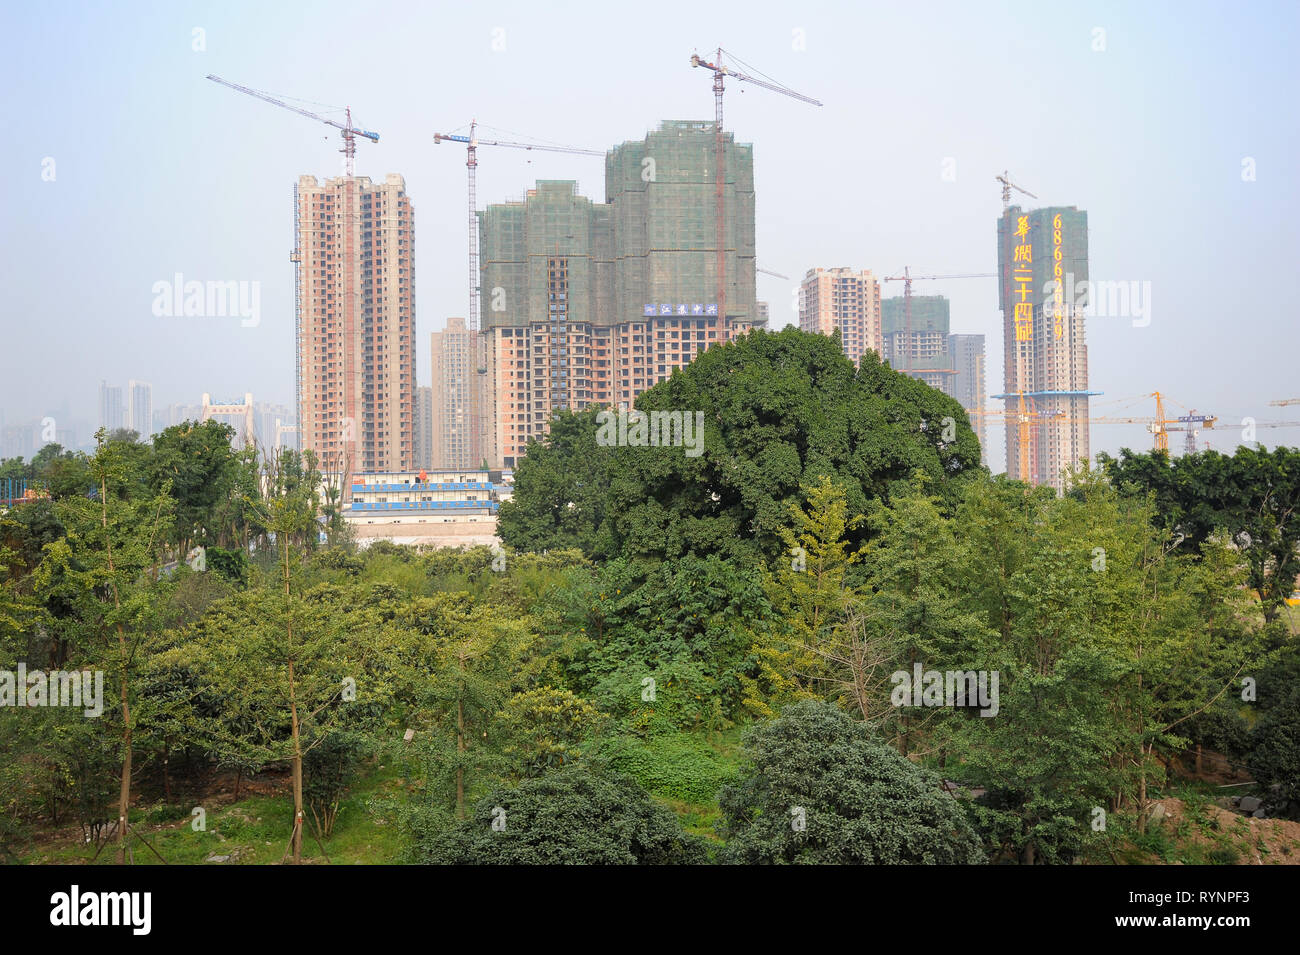 03.08.2012, Chongqing, China, Asia - View of a construction site with new high-rise apartment buildings outside the city centre. Stock Photo